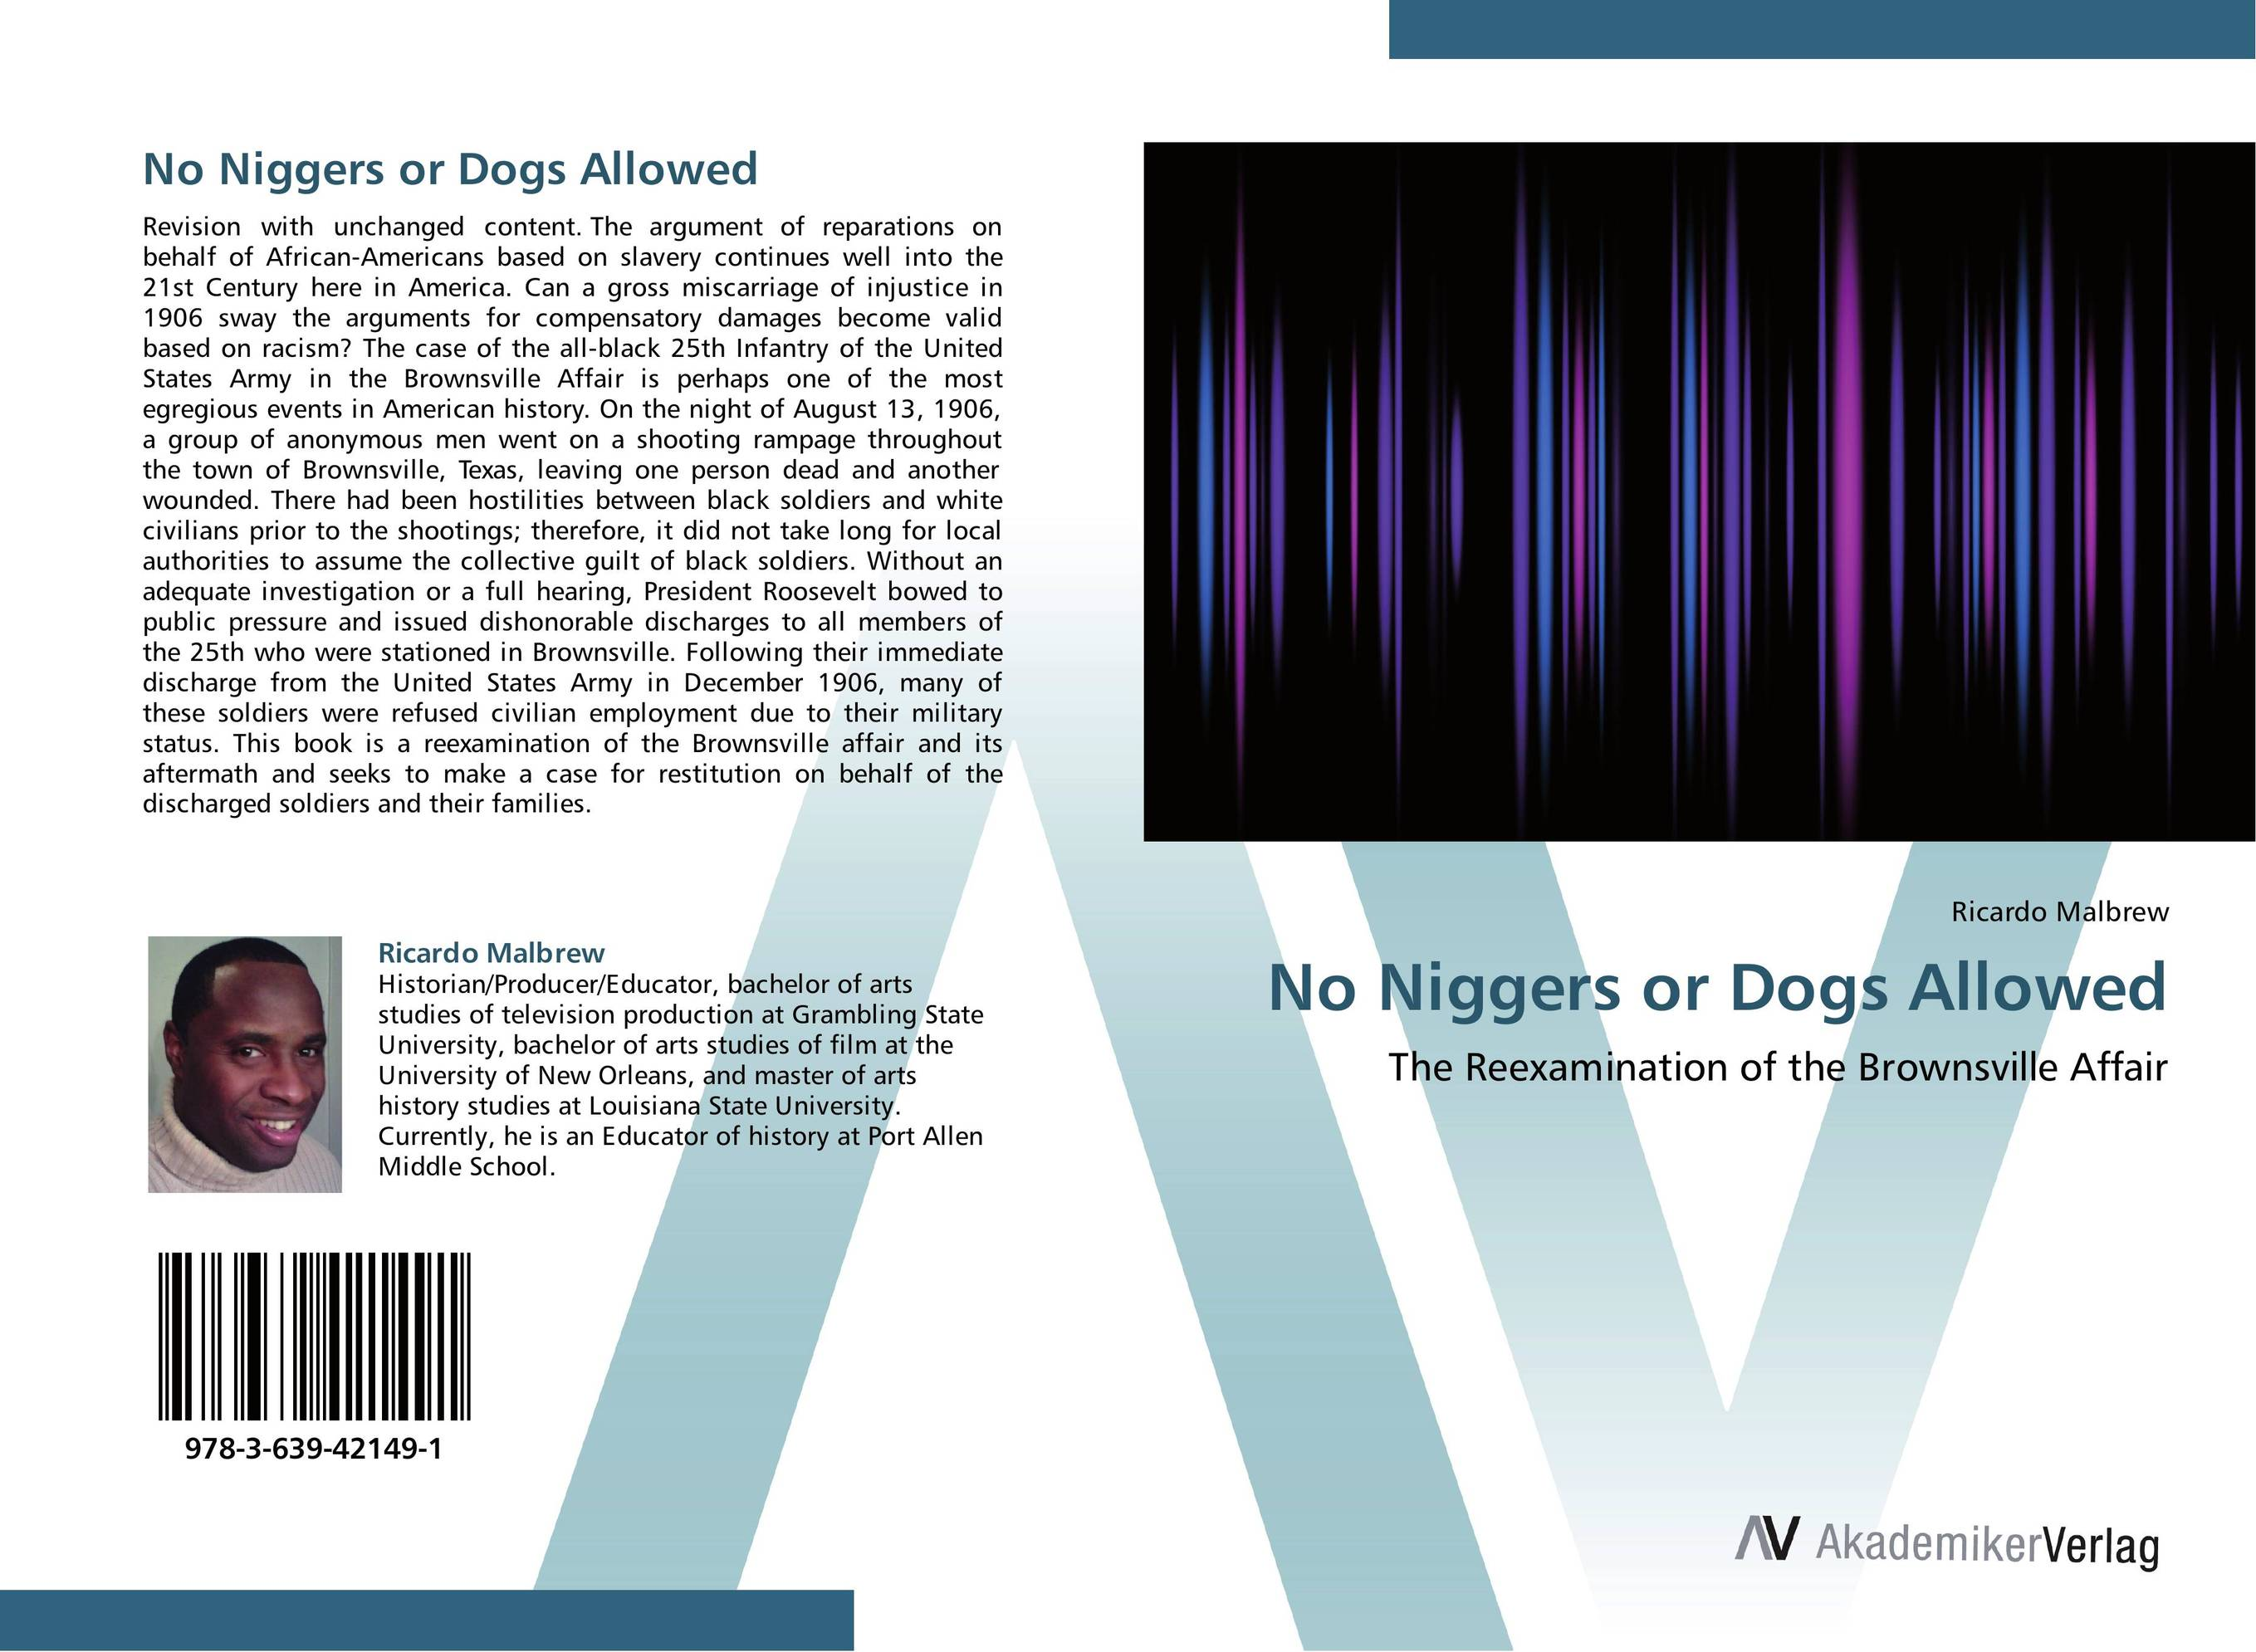 No Niggers or Dogs Allowed hira dhar chudali md hasrat ali and anju choudhury topographical implication on income and employment of nepalese people